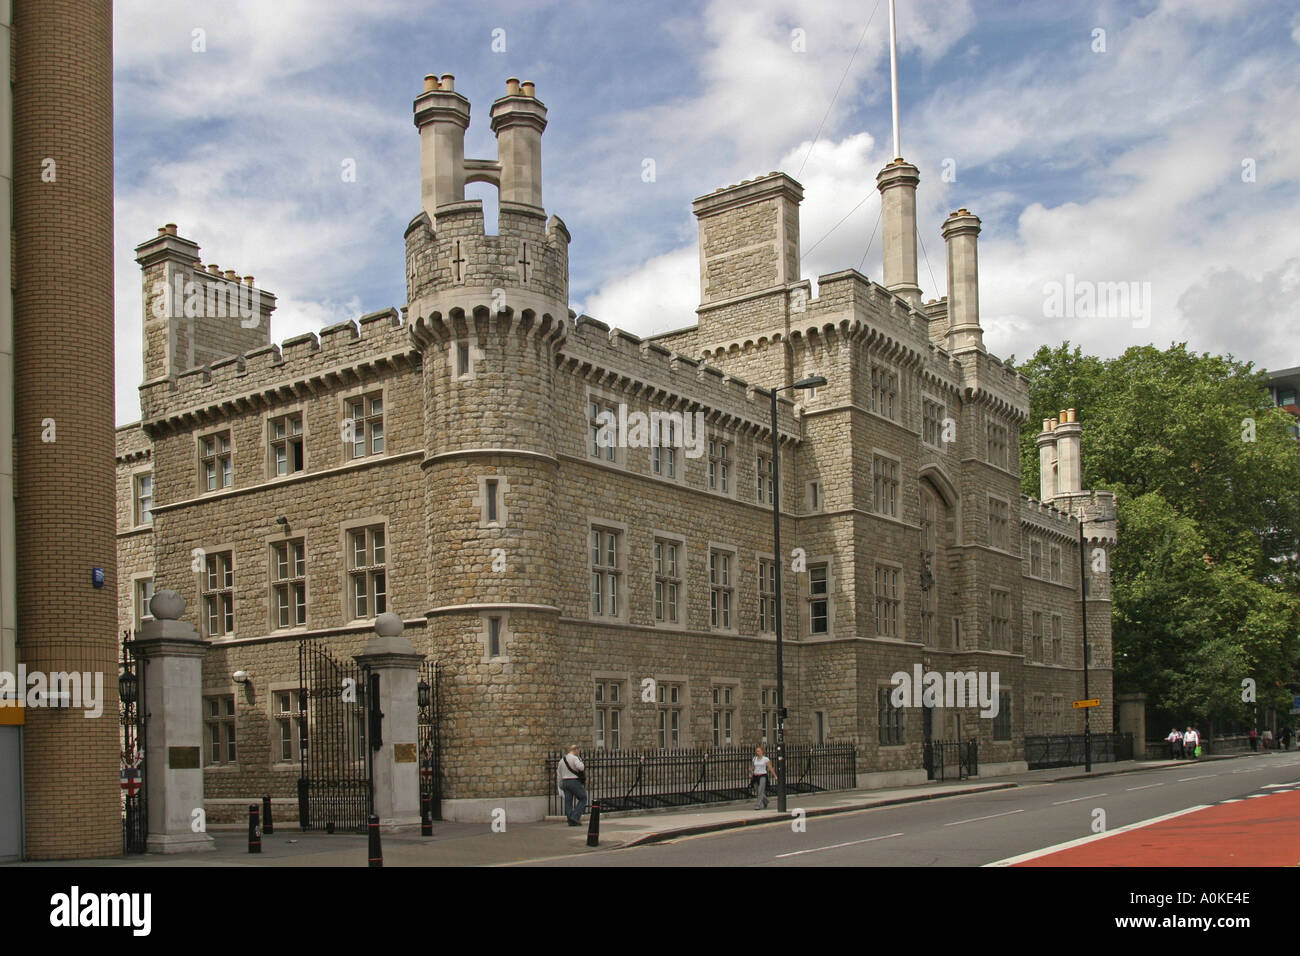 Accueil Caserne Finsbury HAC de l'Honorable Artillery Company dans City of London GB UK Photo Stock